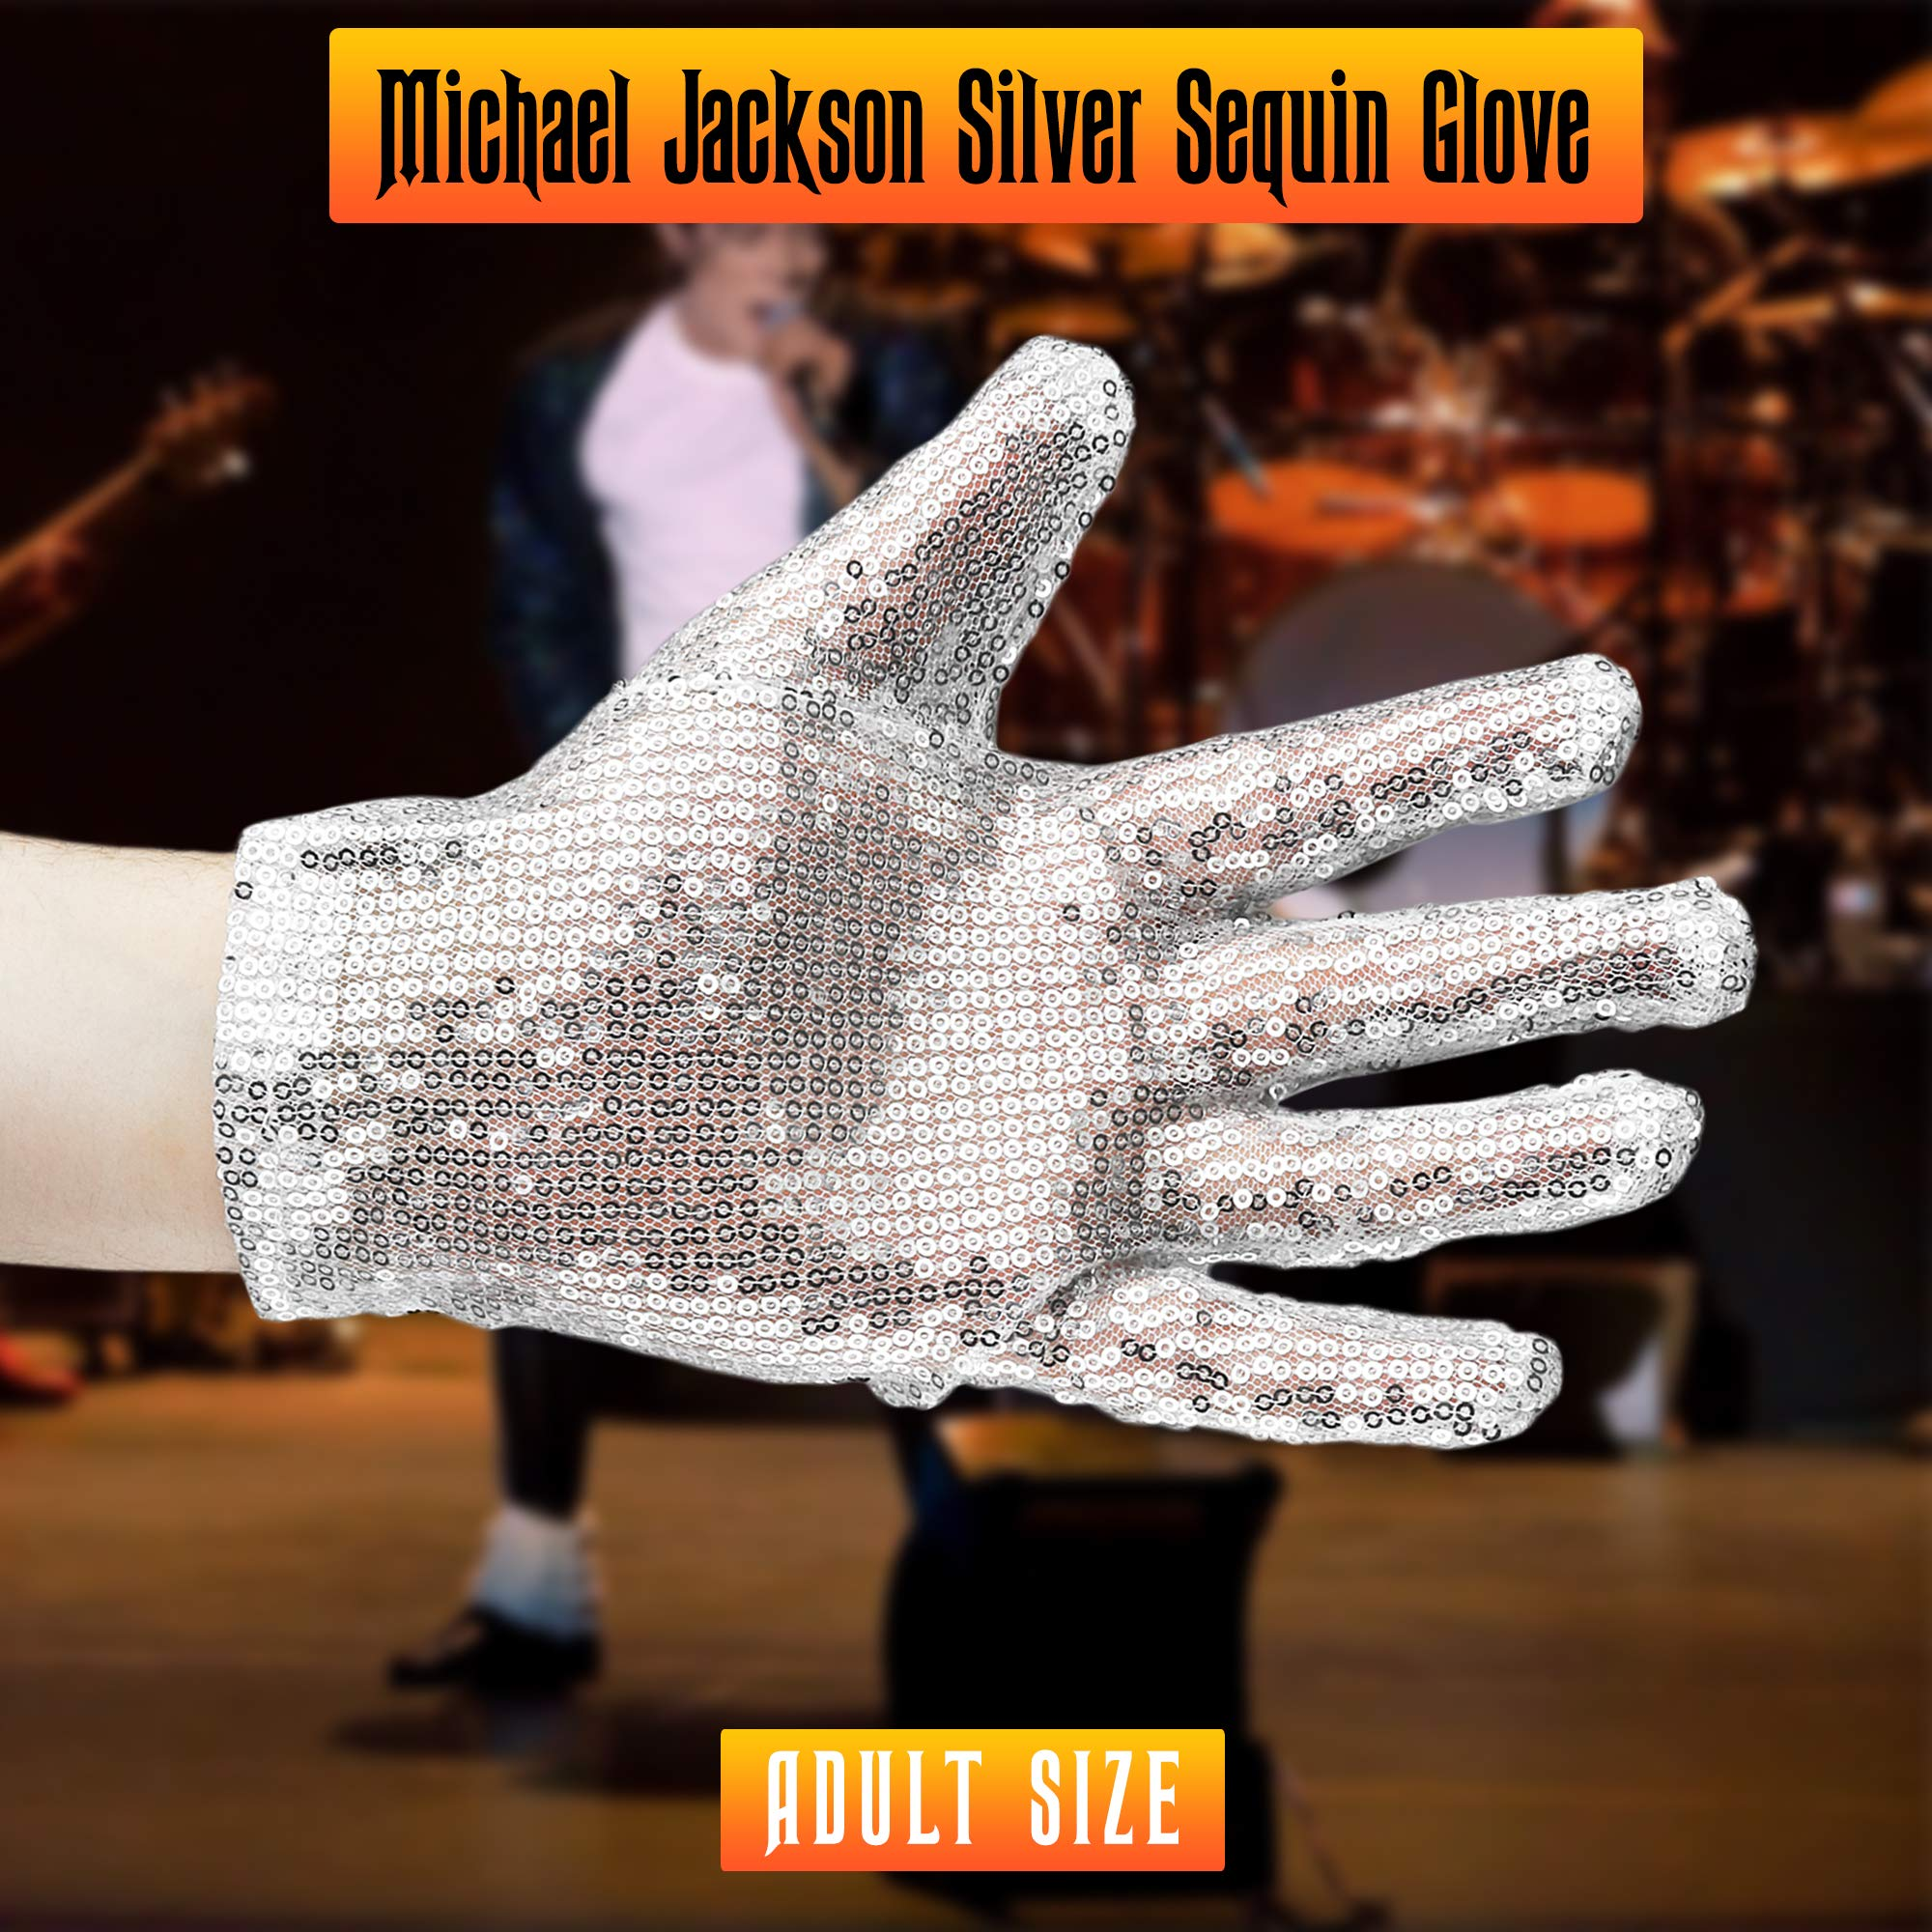 Michael Jackson glove sells for $49,000 | The Star